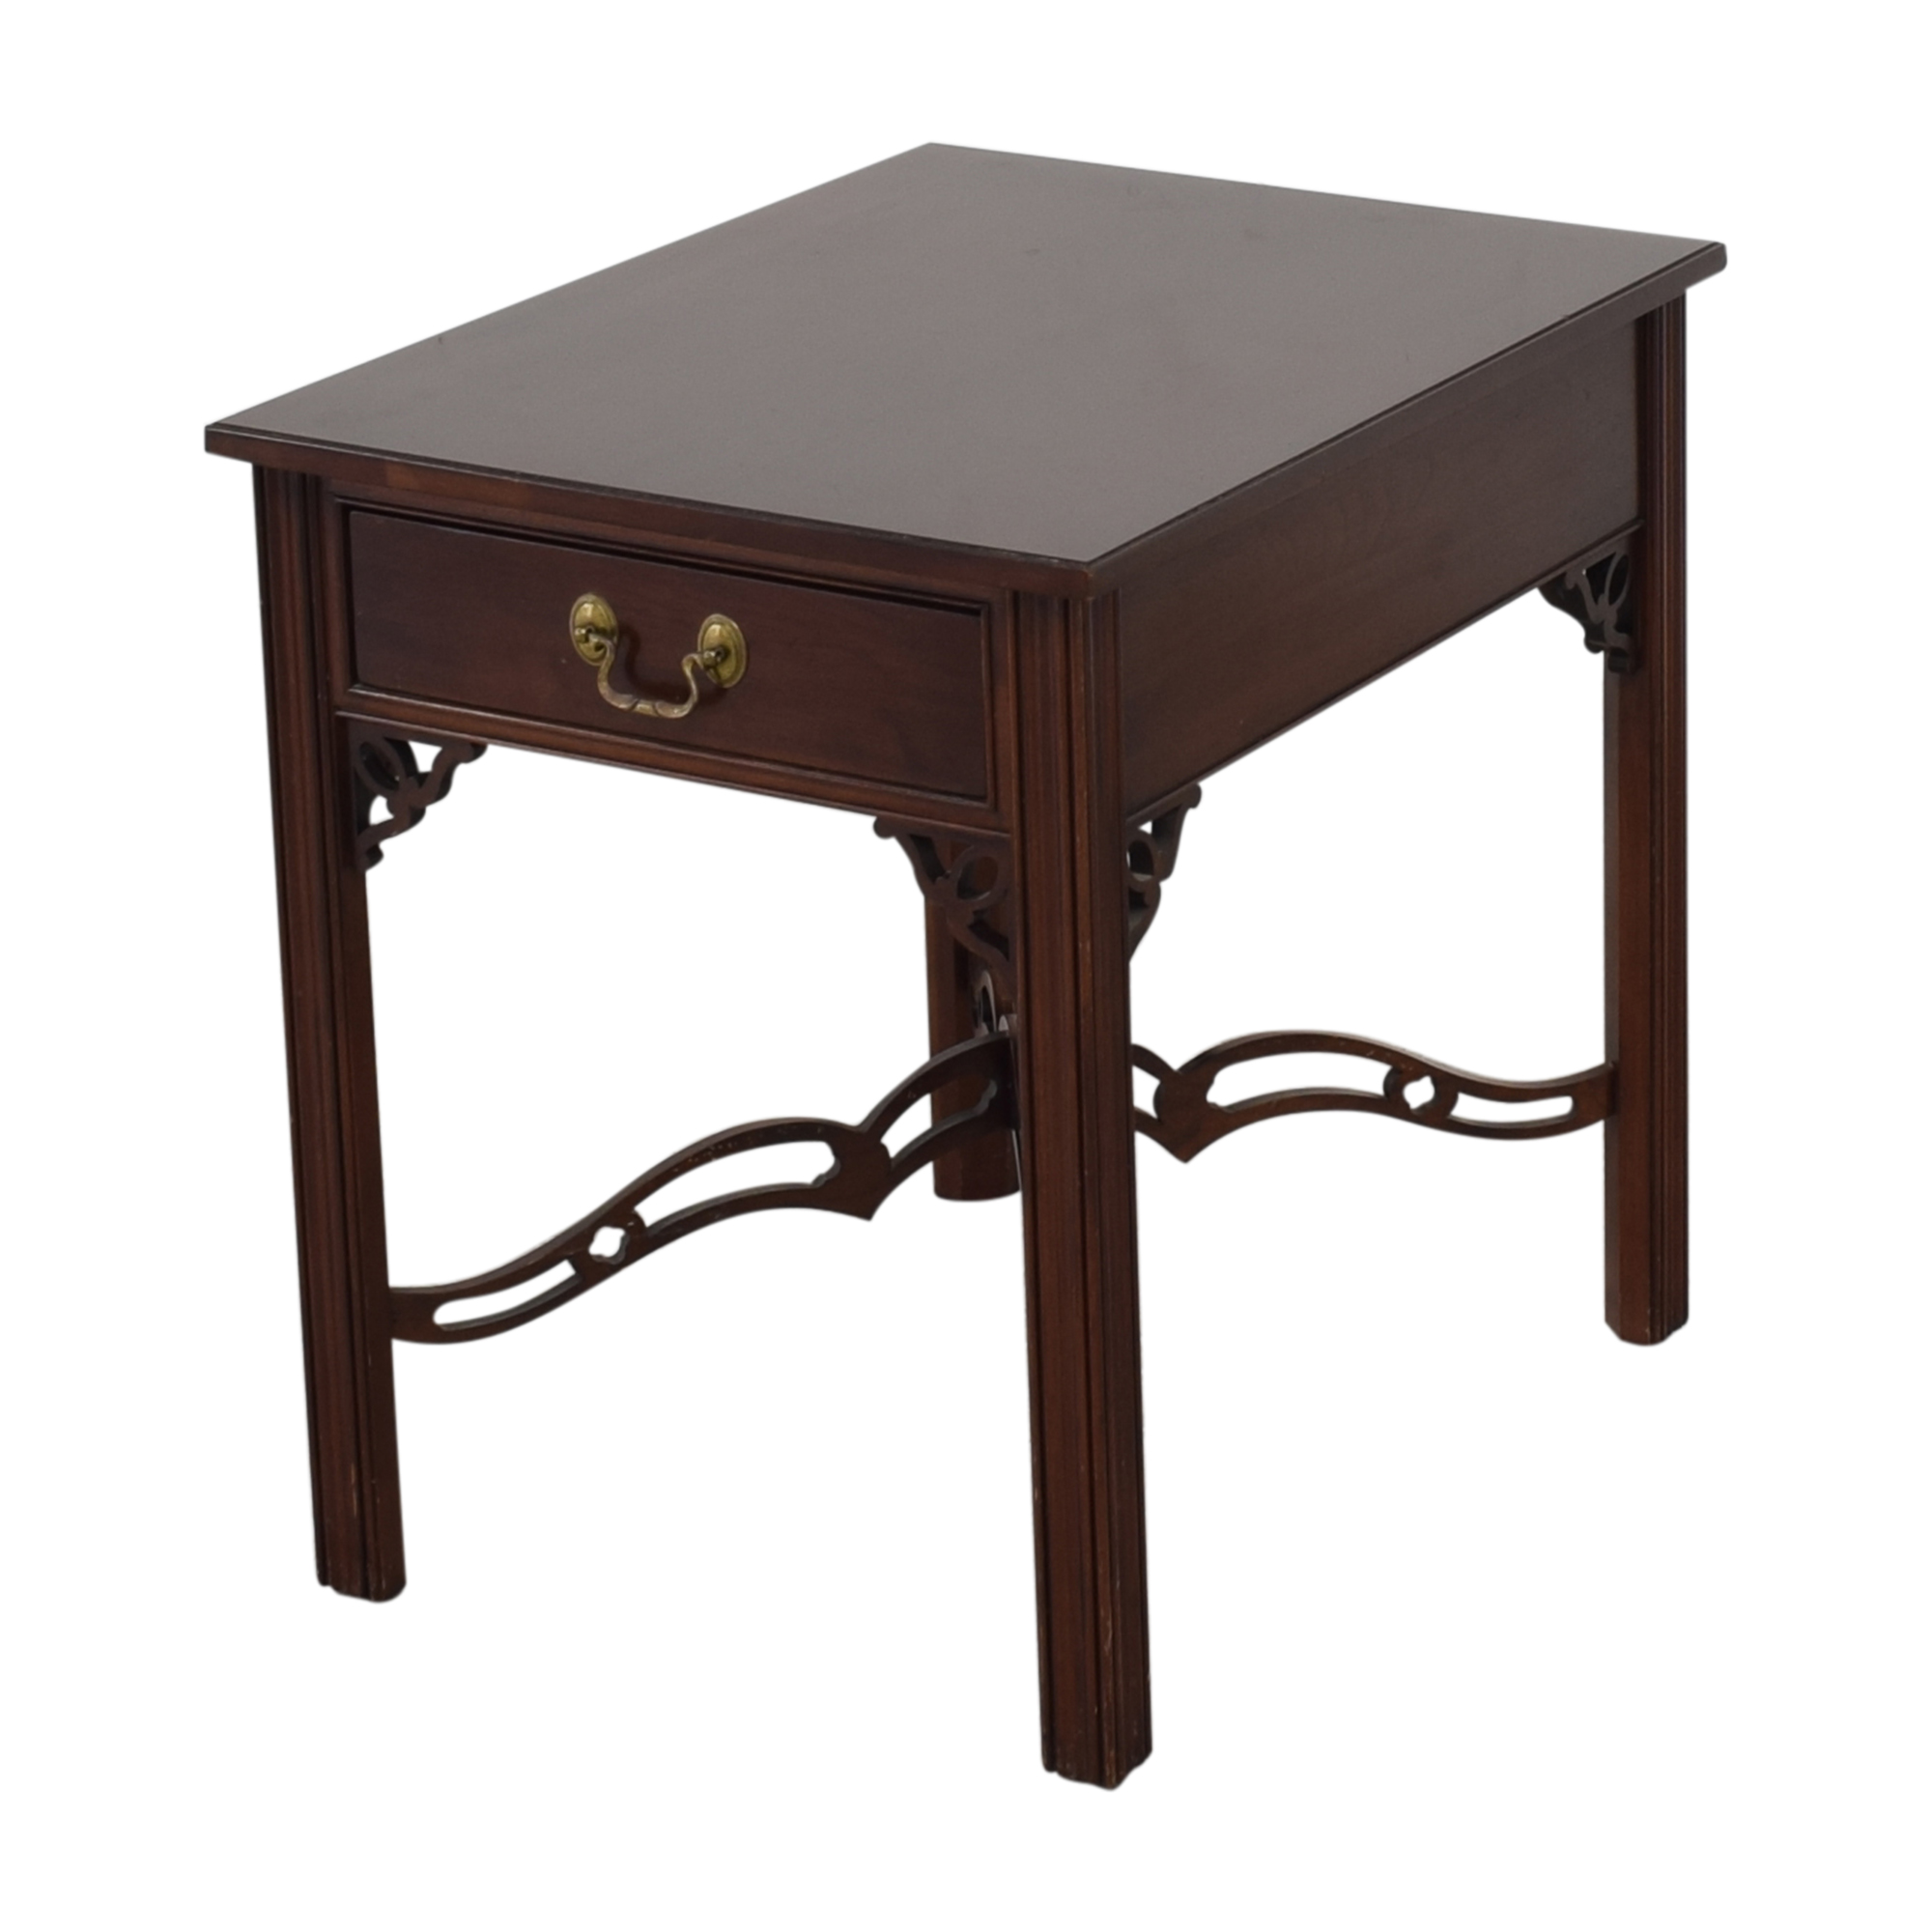 Ethan Allen Ethan Allen One Drawer End Table nj